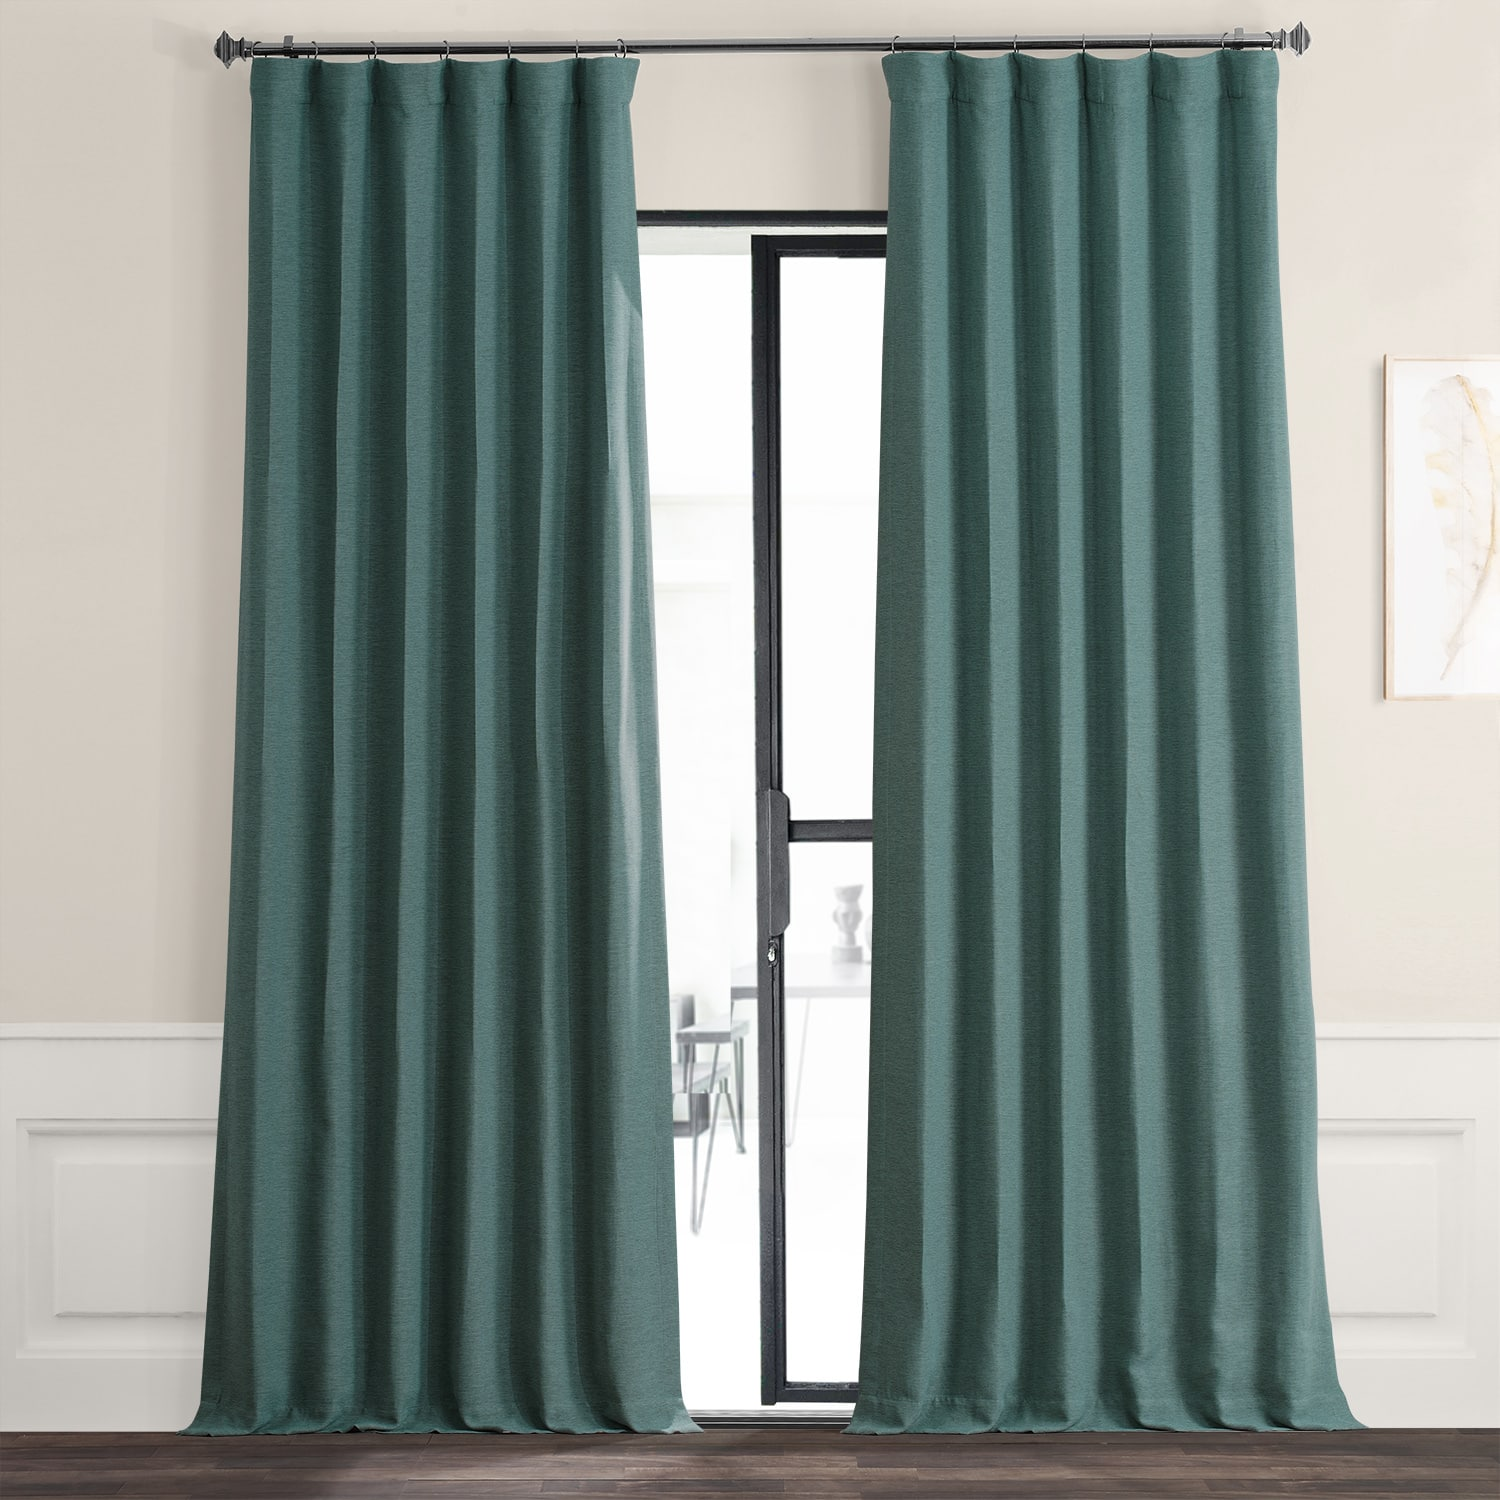 Jadite Bellino Blackout Room Darkening Curtain